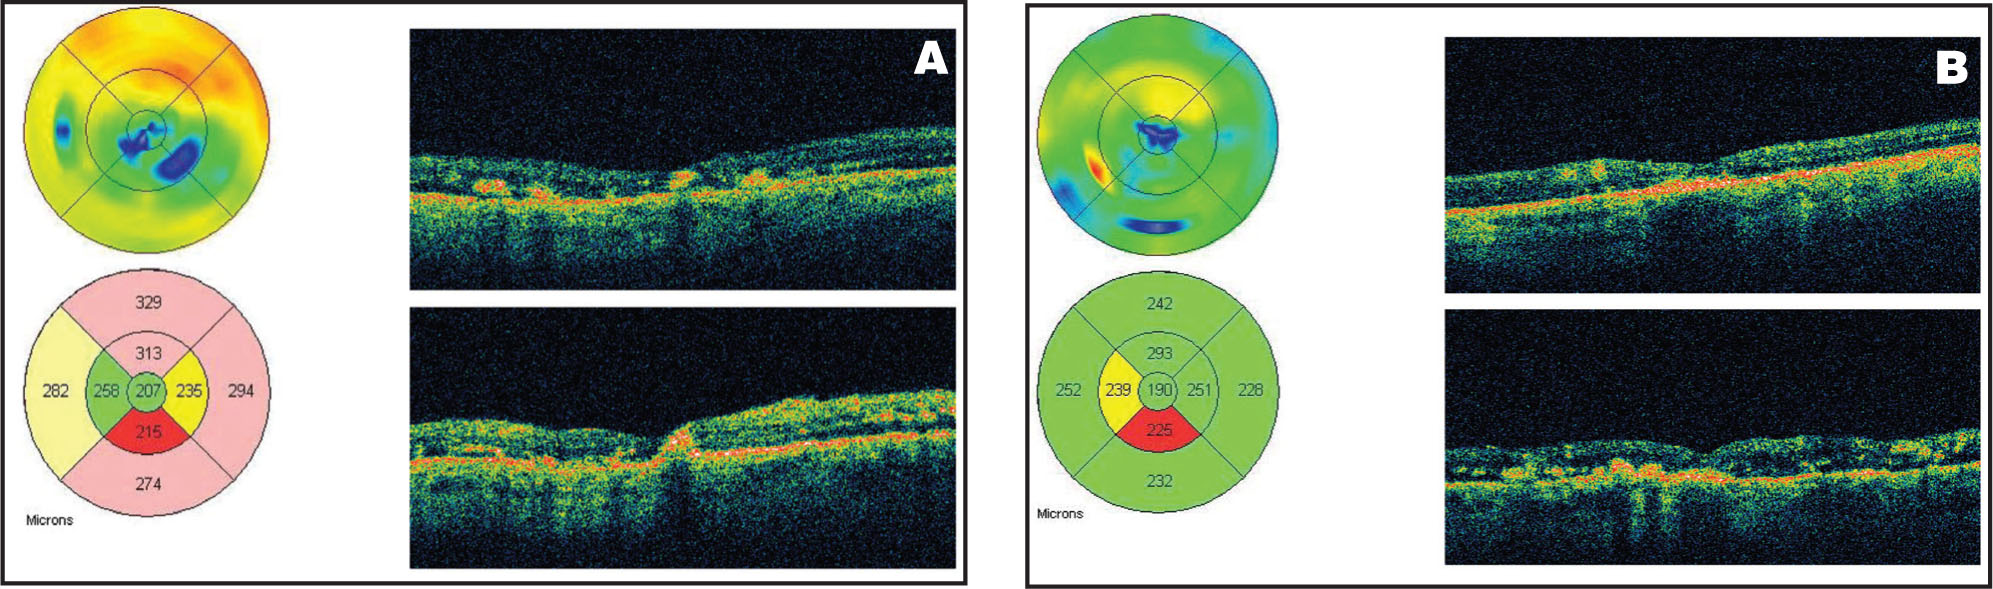 (A) OCT of the Right Eye in Case #1 at 3 Months Following IVTA Injection (4 mg in 0.1 mL), Showing Improvement in Macular Thickening, from 473 Microns to 207 Microns. (B) OCT of the Left Eye at 3 Months Following IVTA Injection, Showing Improvement in Macular Thickening from 303 Microns to 190 Microns.